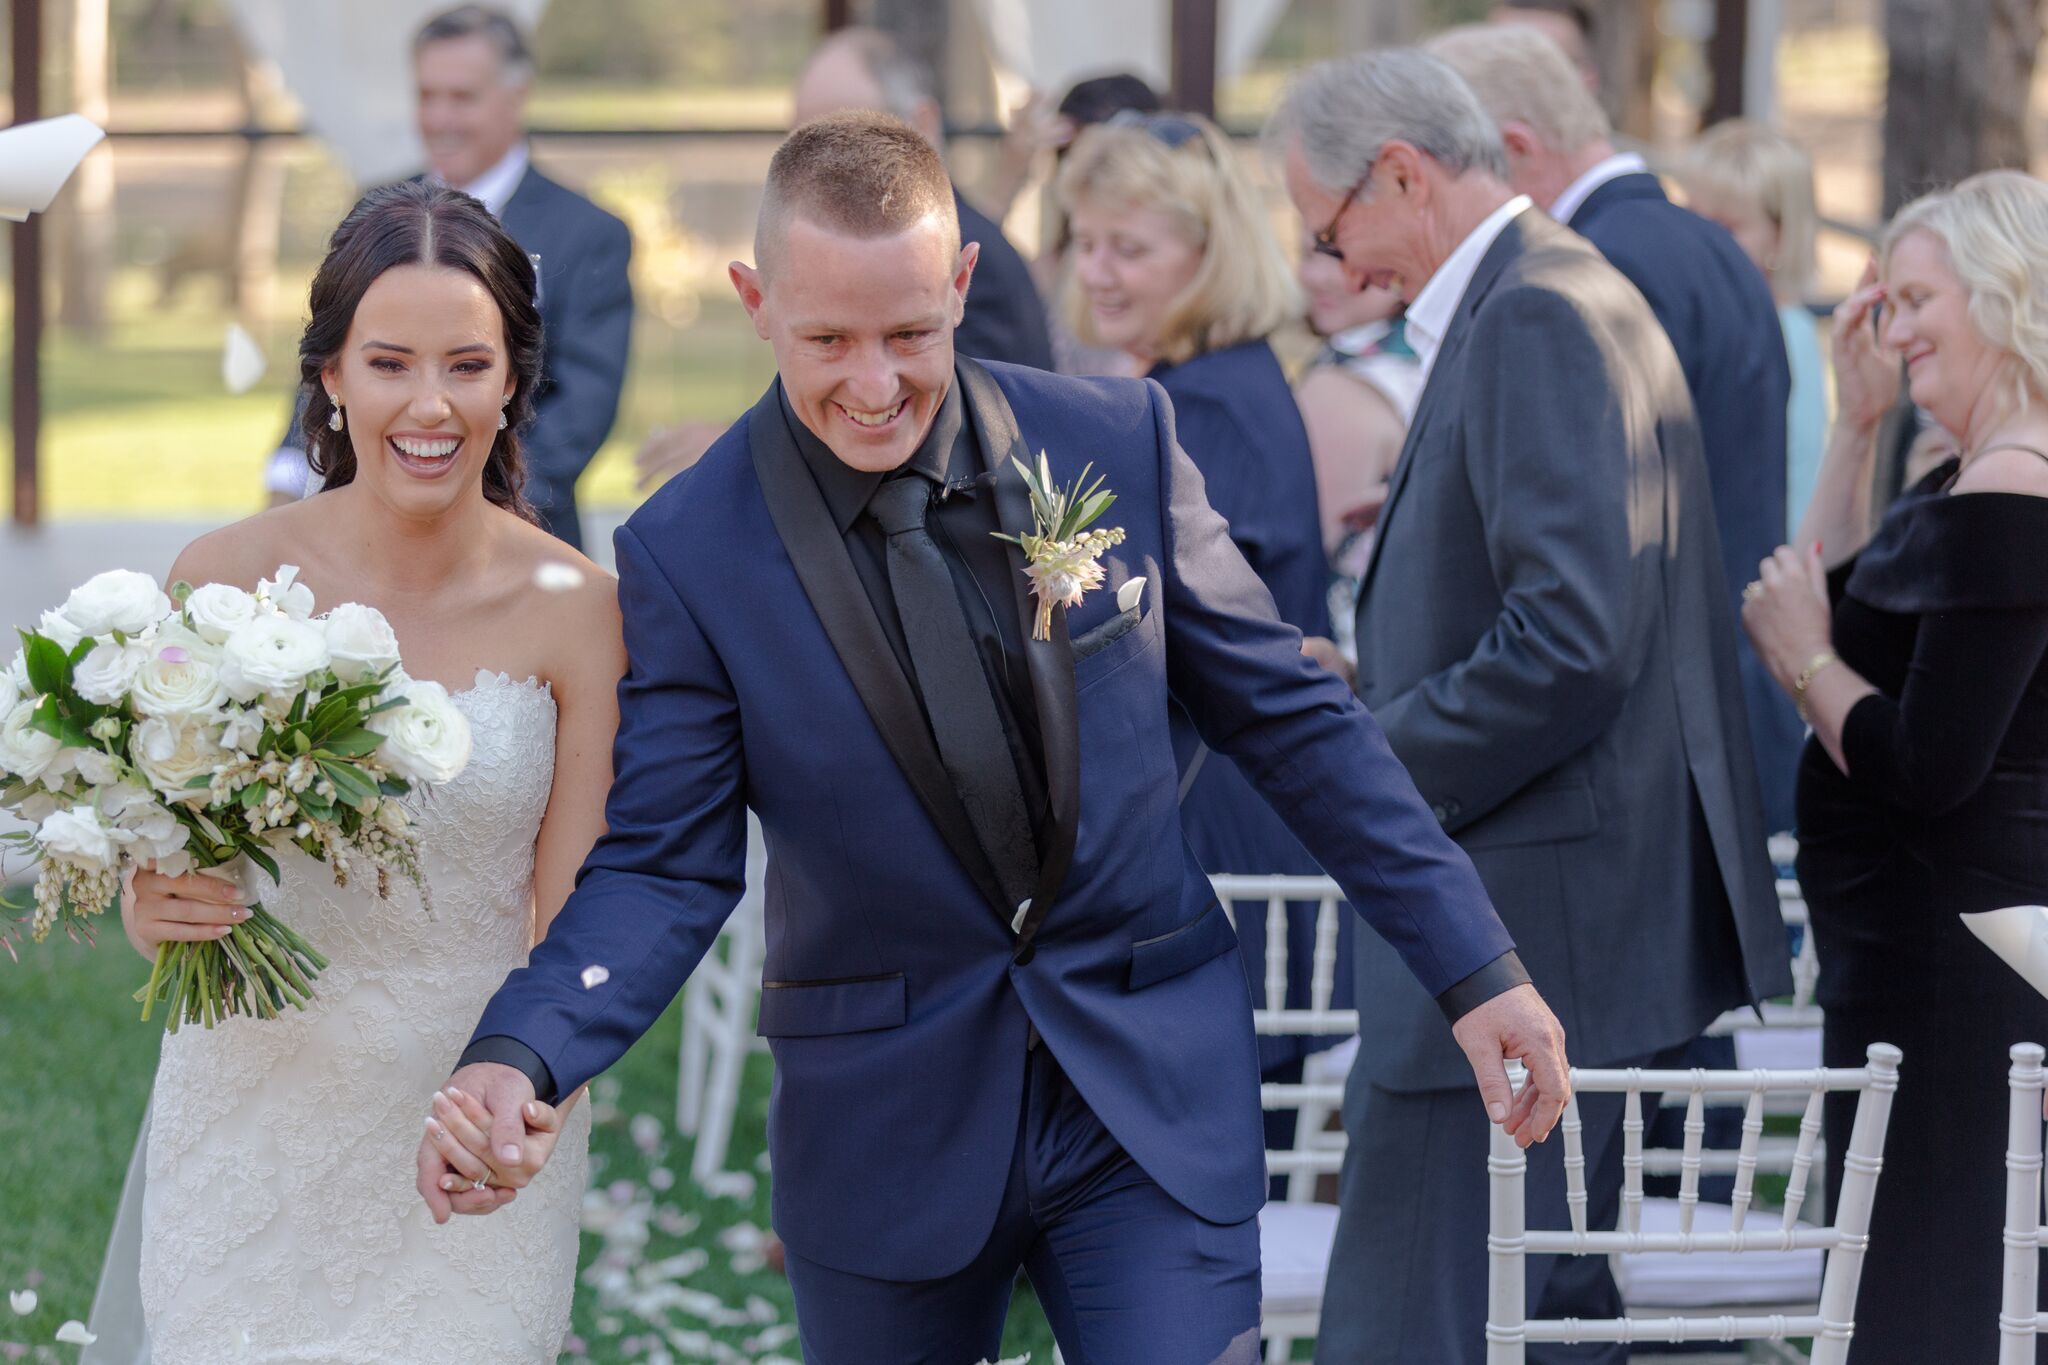 Real Wedding: Jessica and Jake, Brisbane Marquee Wedding | Hampton Event Hire - Wedding and Event Hire on the Gold Coast, Brisbane and Byron Bay | Photo by Just For Love Photography